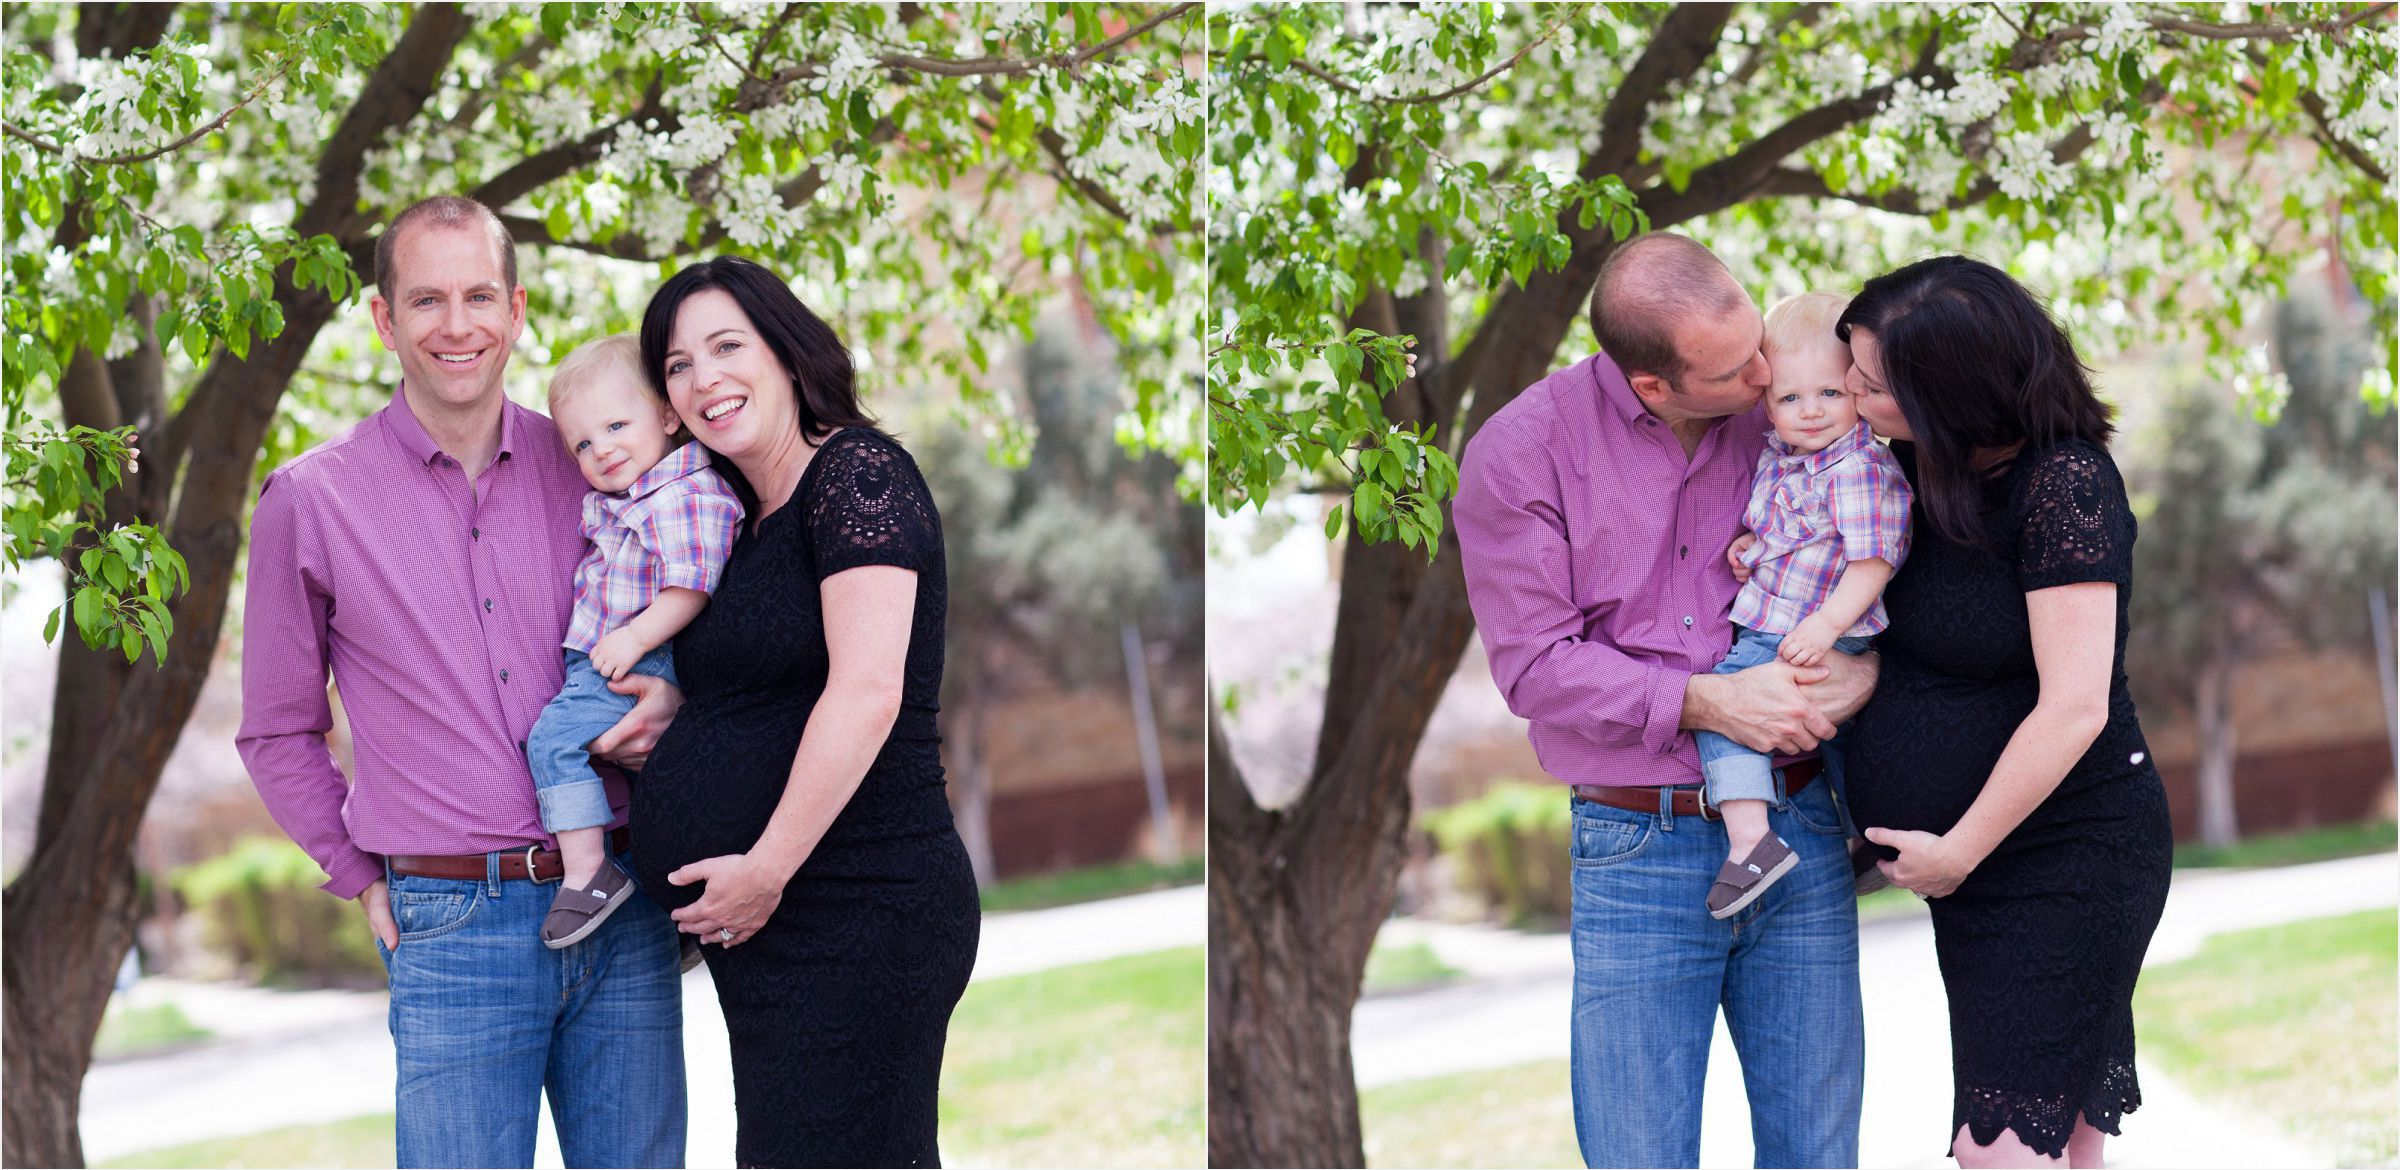 17-Denver-Family-Photography.jpg